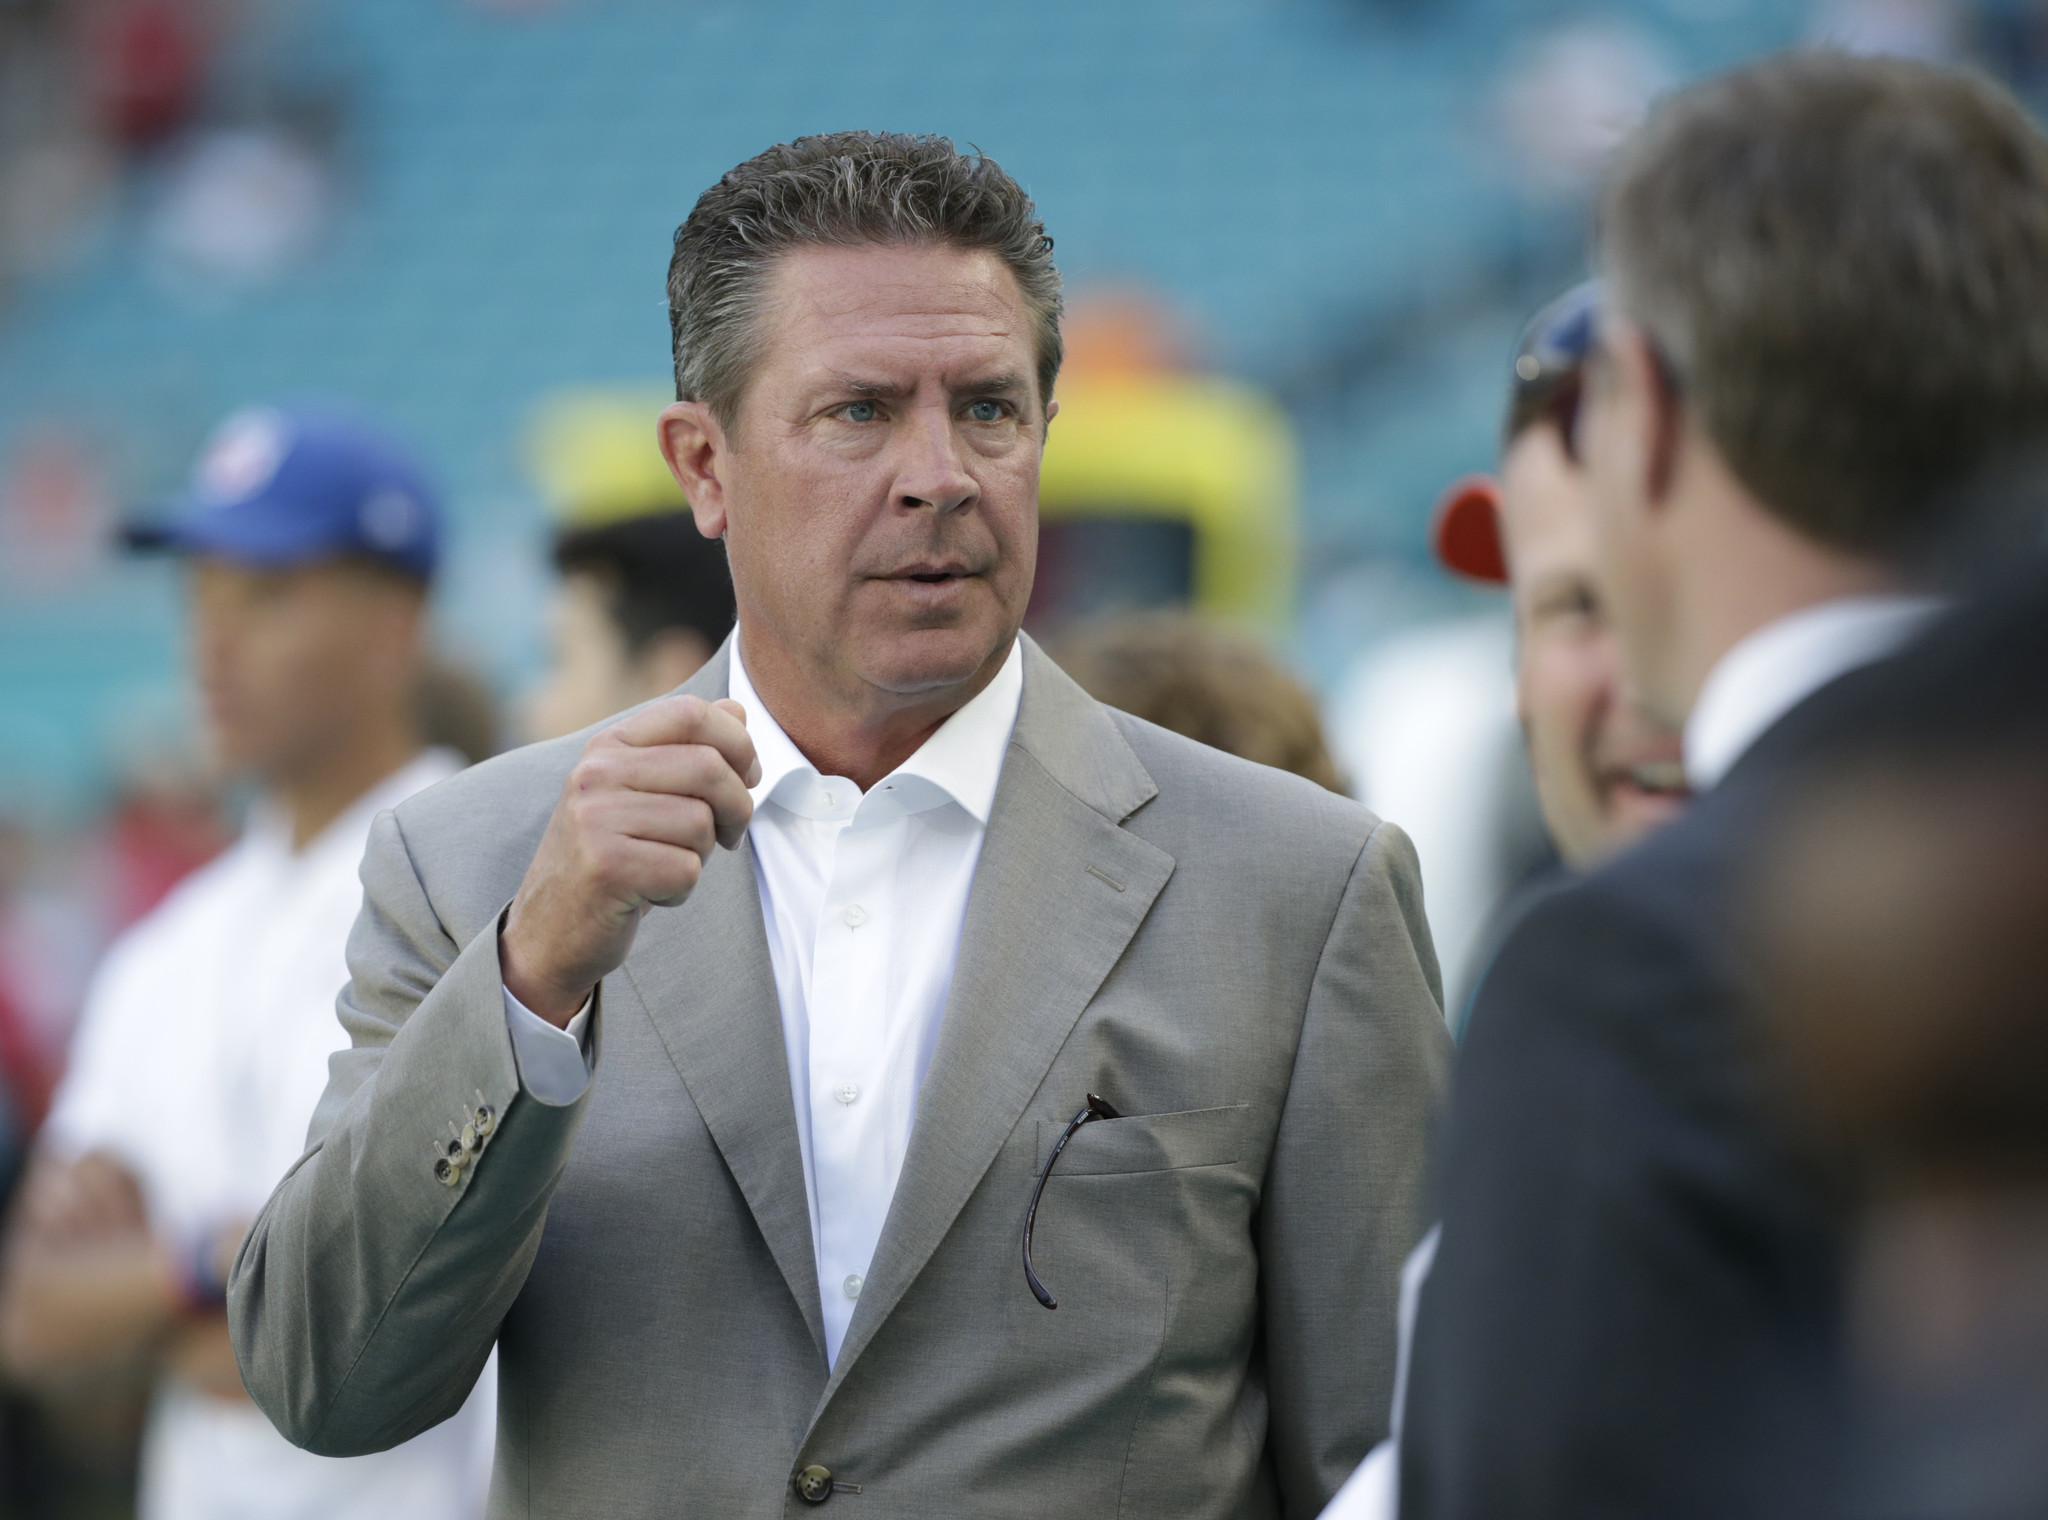 Mc-today-in-the-nfl-dan-marino-finally-makes-retirement-official-20170223